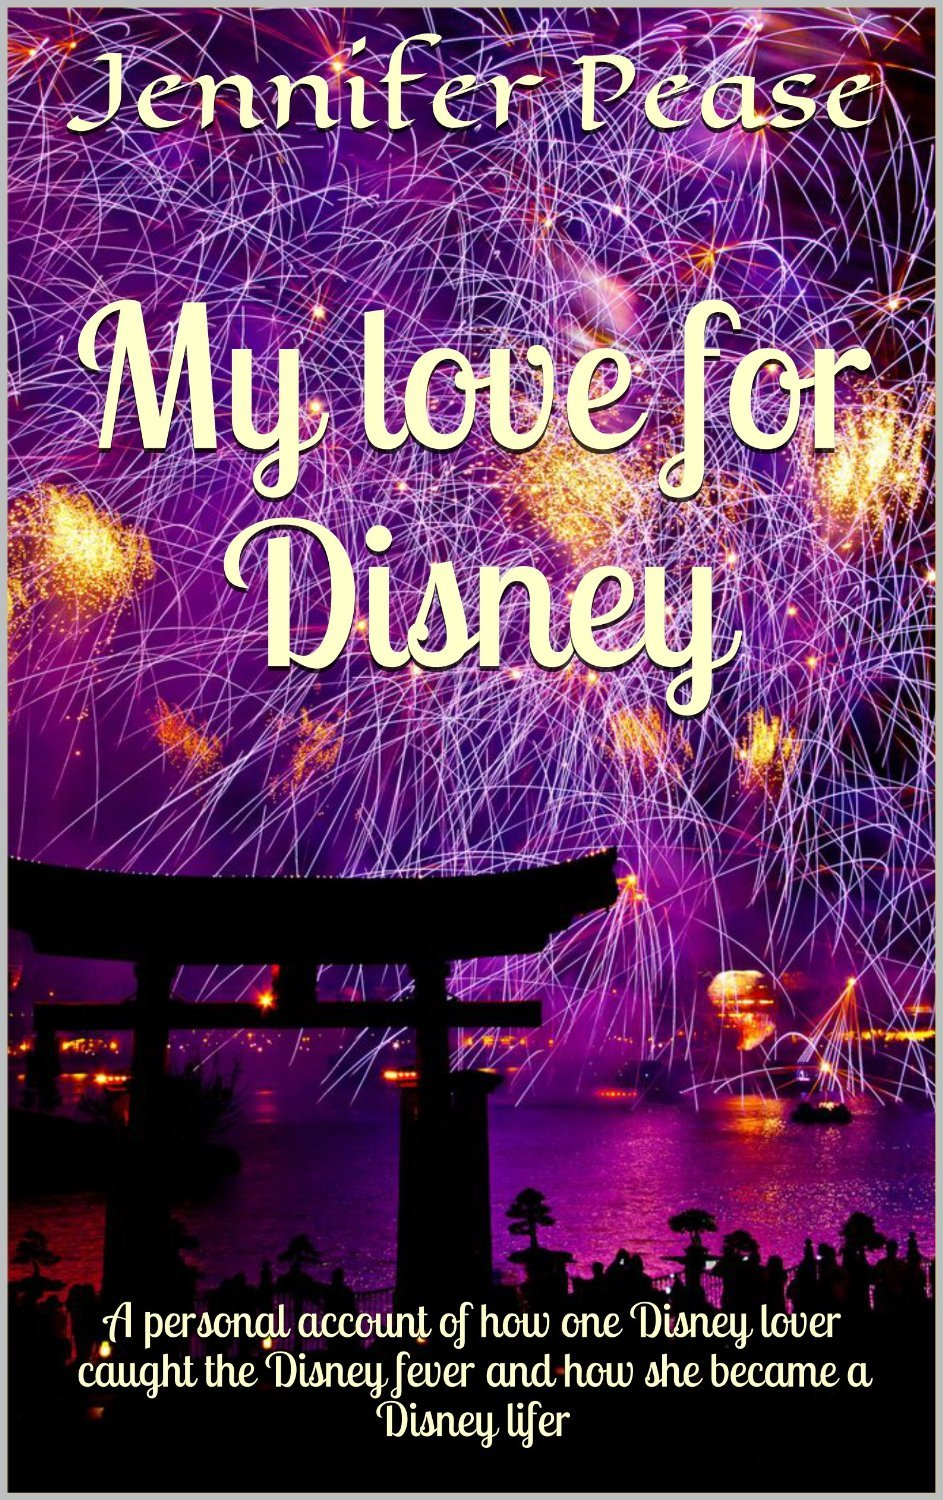 My love for Disney: A personal account of how one Disney lover caught the Disney fever and how she became a Disney lifer  by  Jennifer Pease